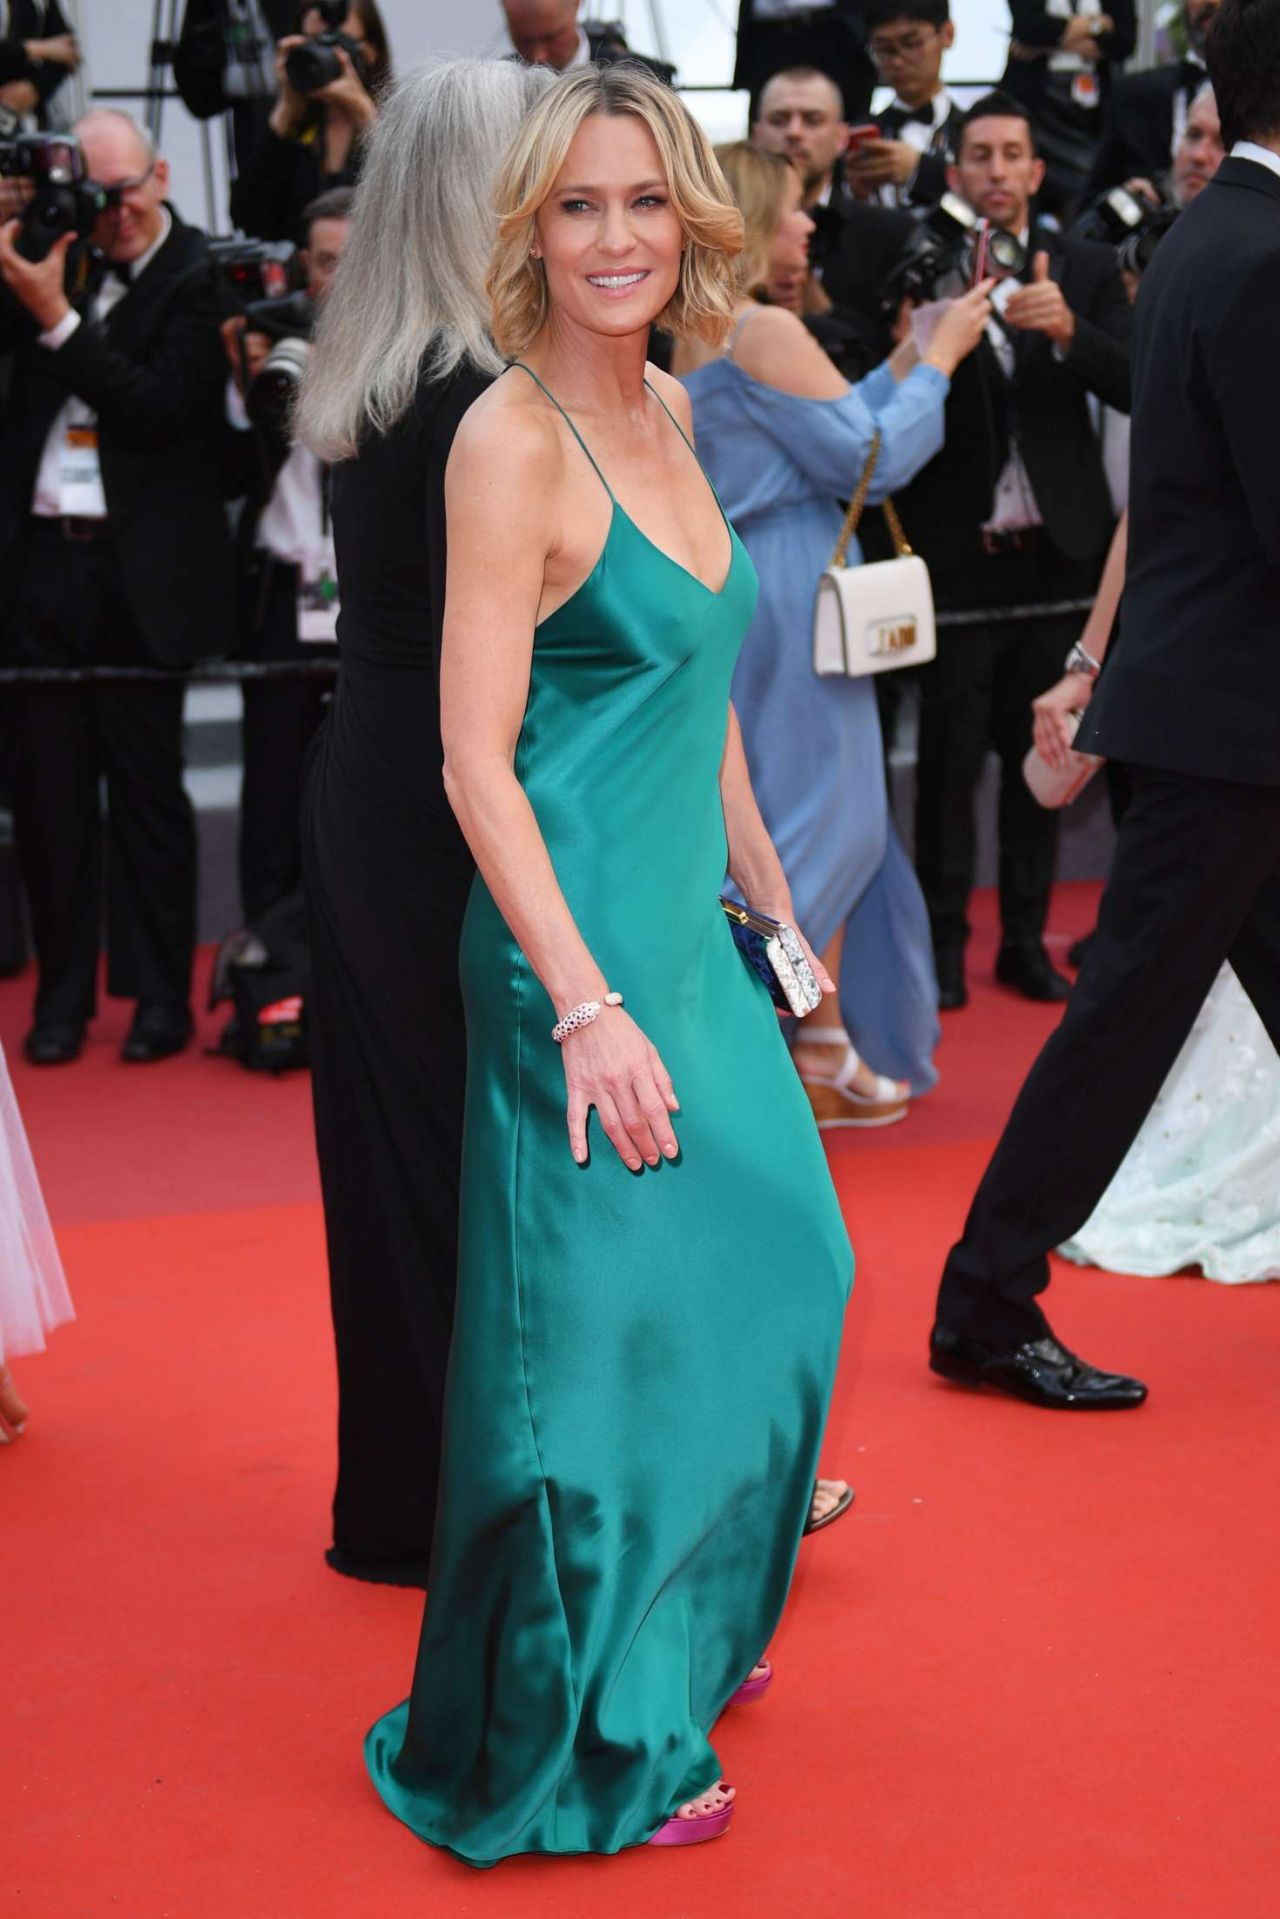 Robin wright loveless nelyubov screening at cannes film festival nude (62 photo), Sexy Celebrites pictures